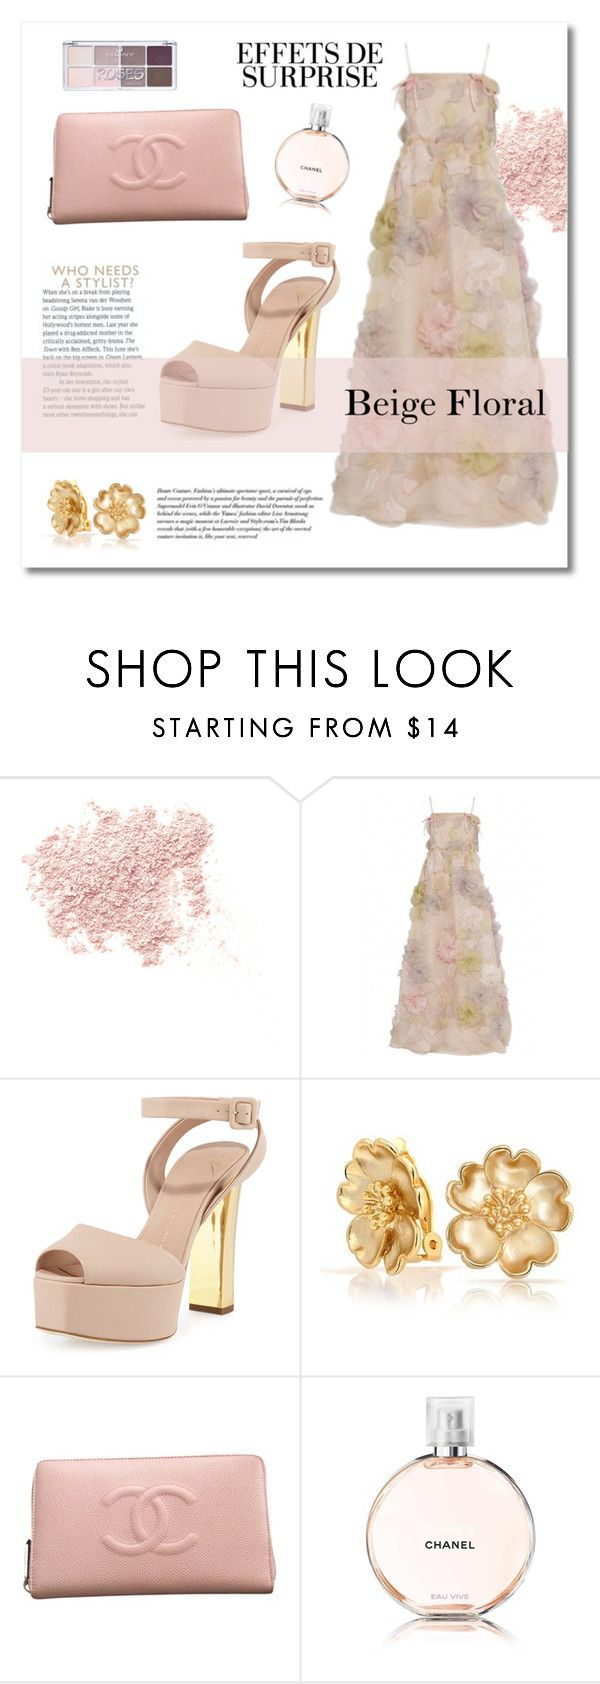 """""""Sin título #810"""" by meelstyle ❤ liked on Polyvore featuring Bare Escentuals, Valentino, Giuseppe Zanotti, Bling Jewelry and Chanel"""